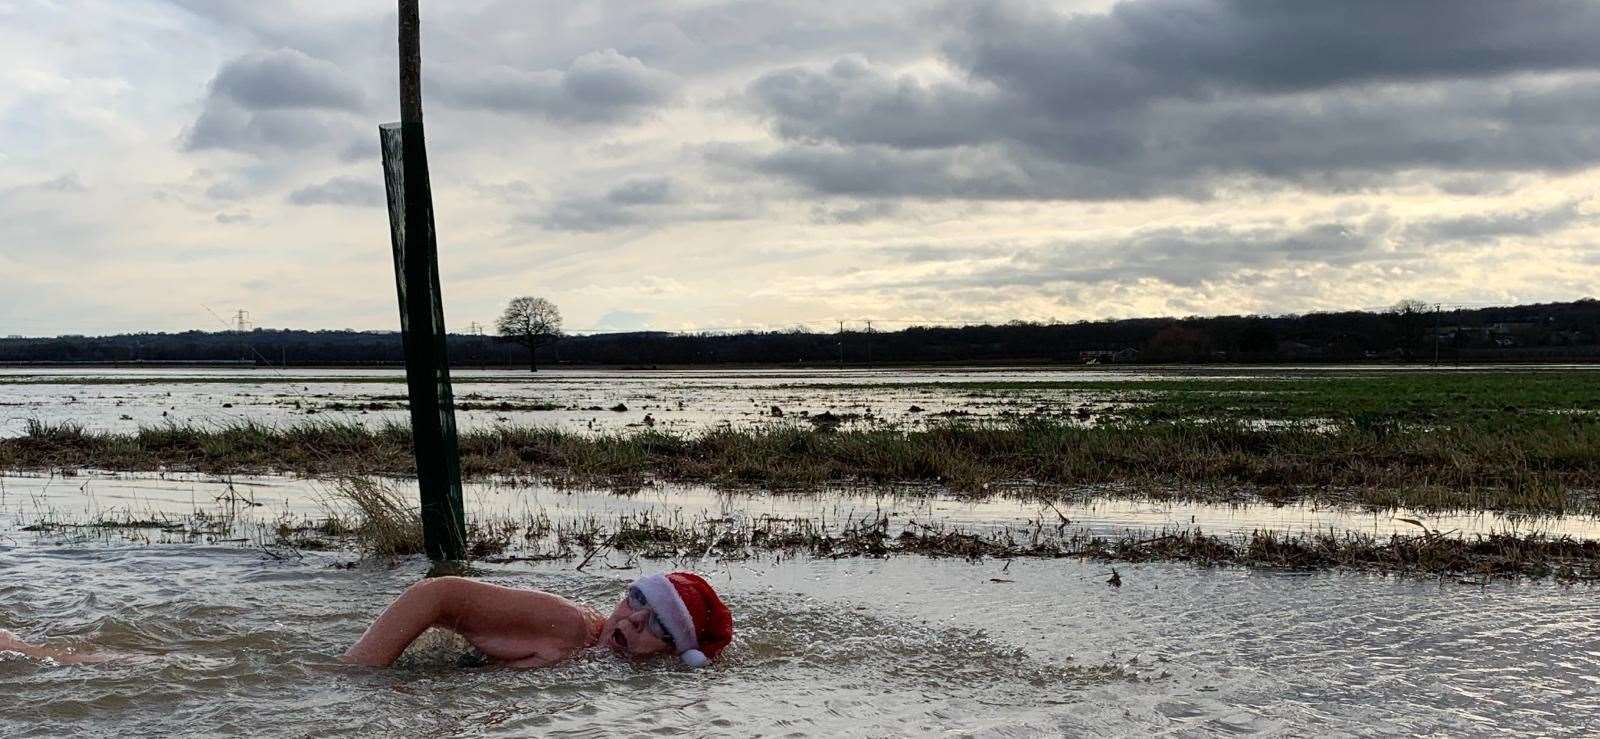 Jackie Cobell, a Capel resident, swam in flood water on Hartlake Road to highlight the flood risk